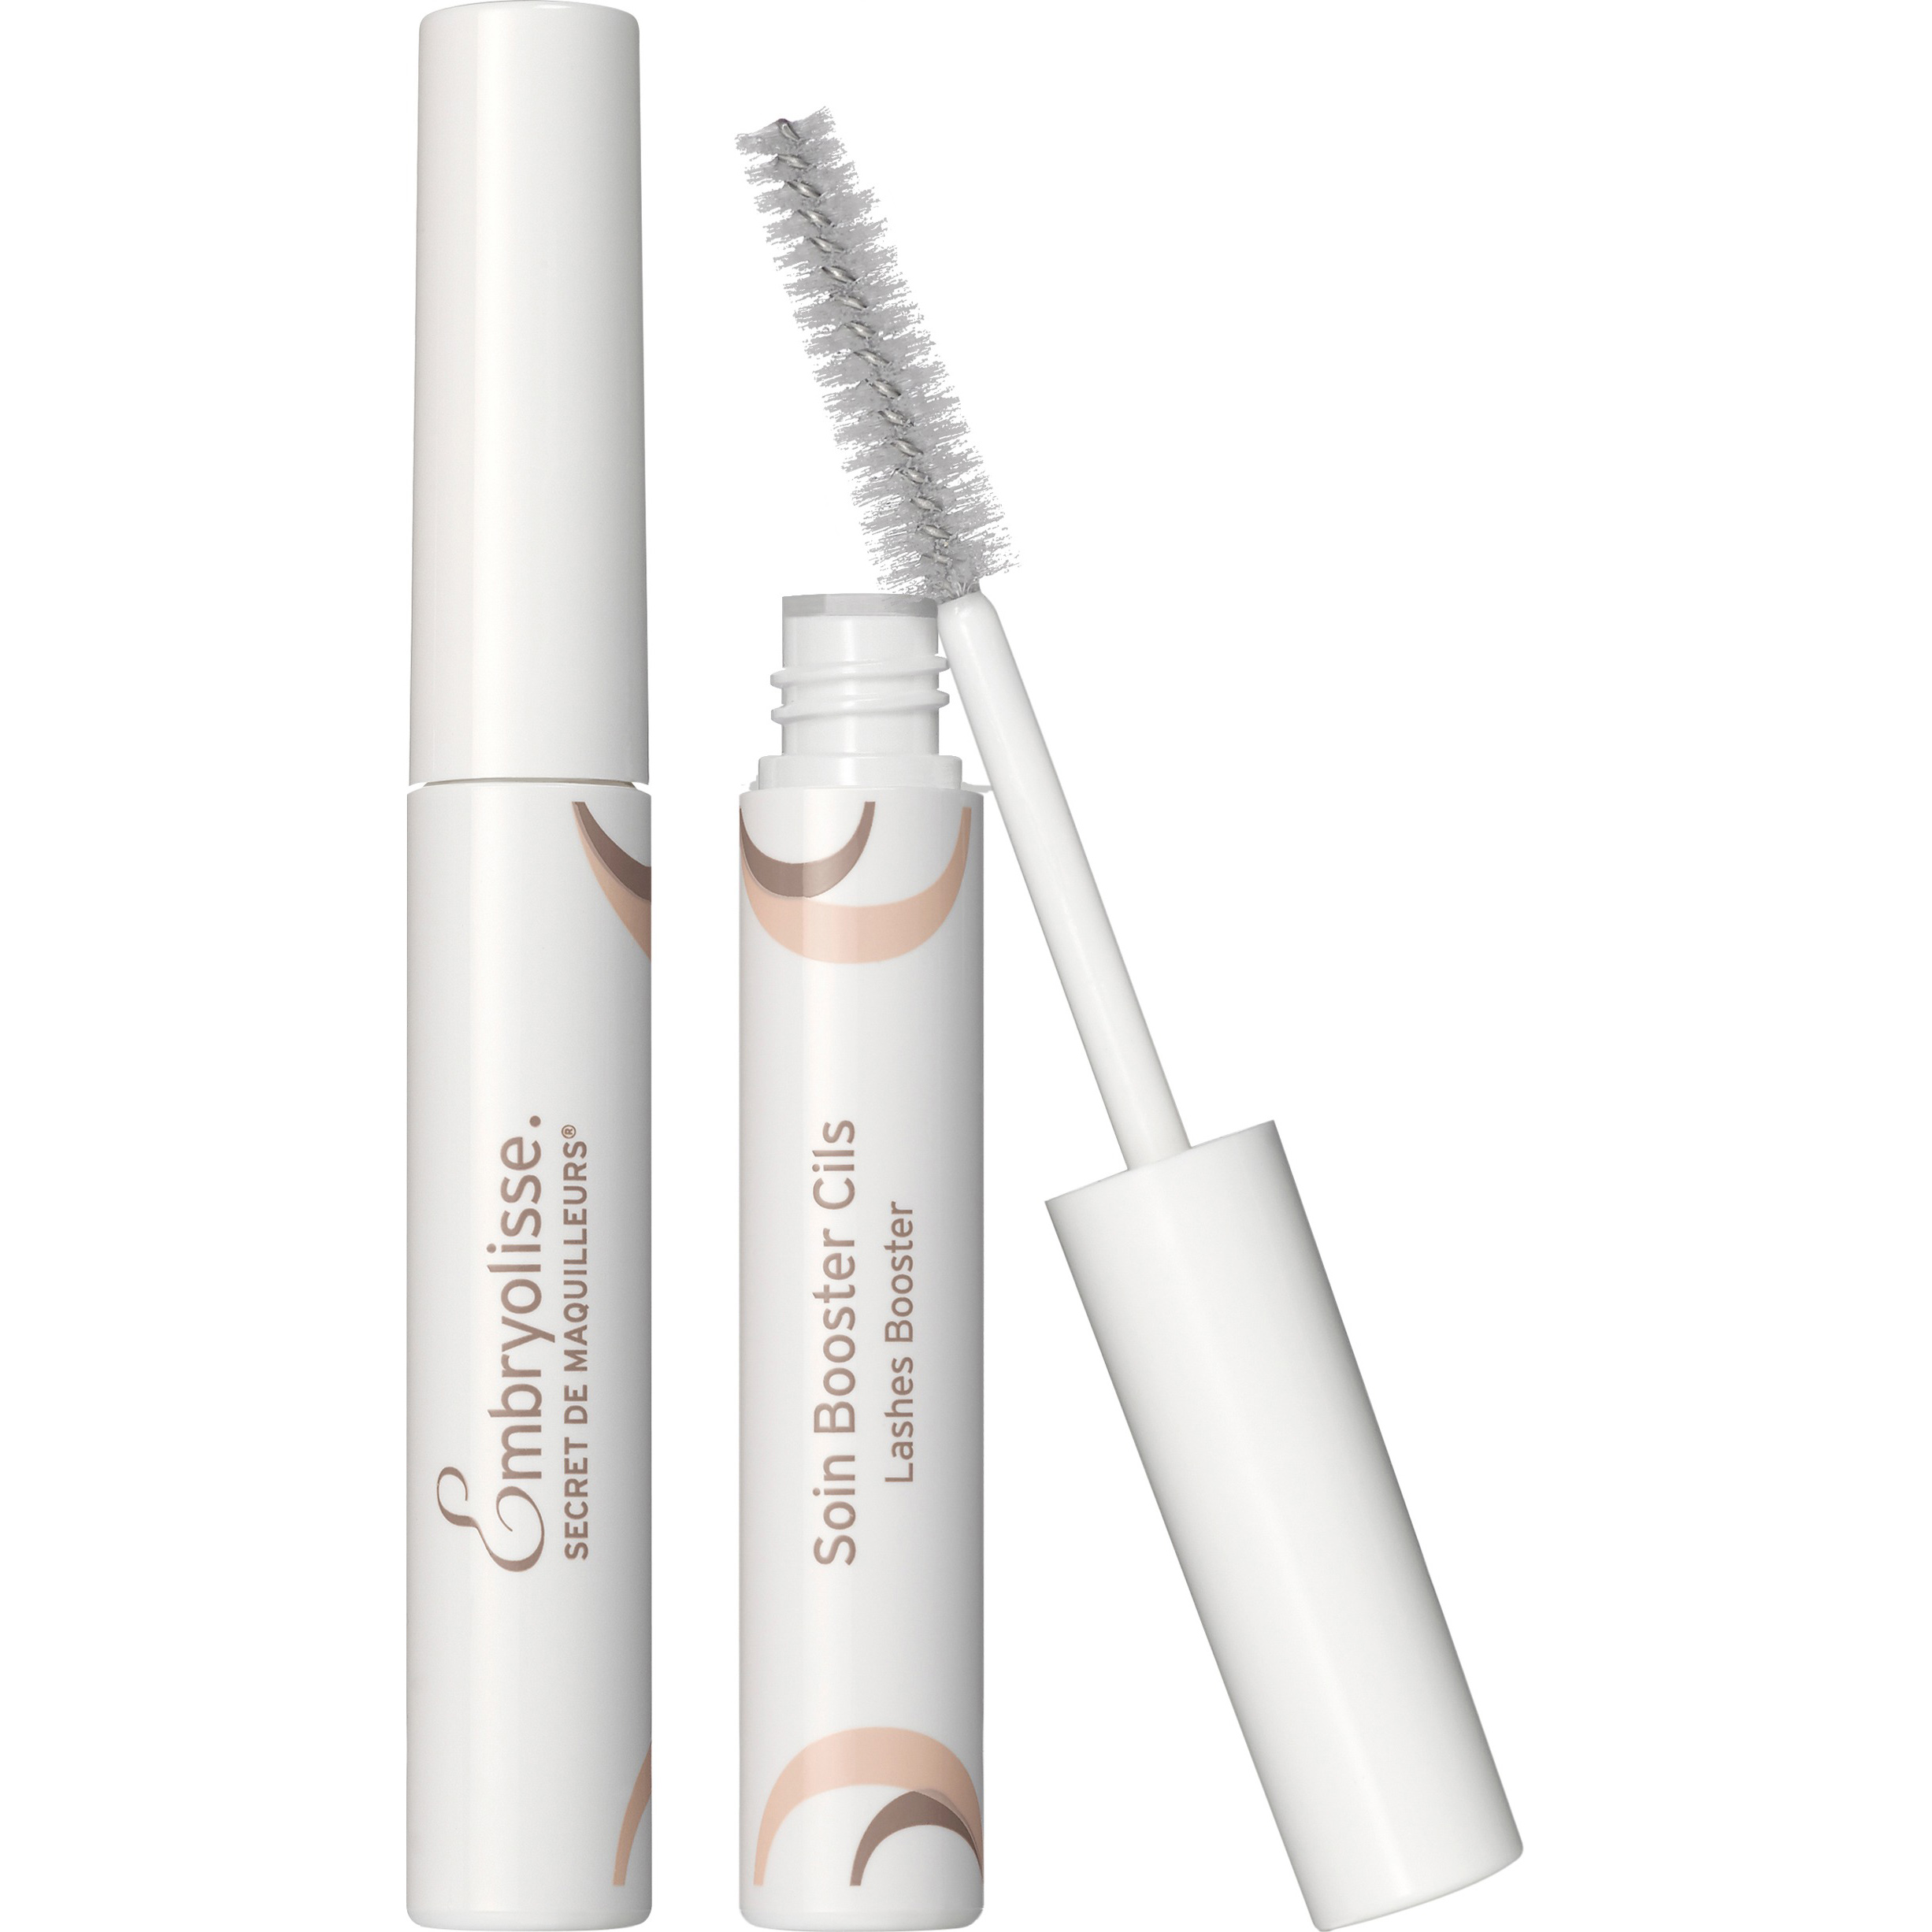 Embryolisse Lashes Booster Θεραπεία Ομορφιάς για τις Βλεφαρίδες 6,5ml